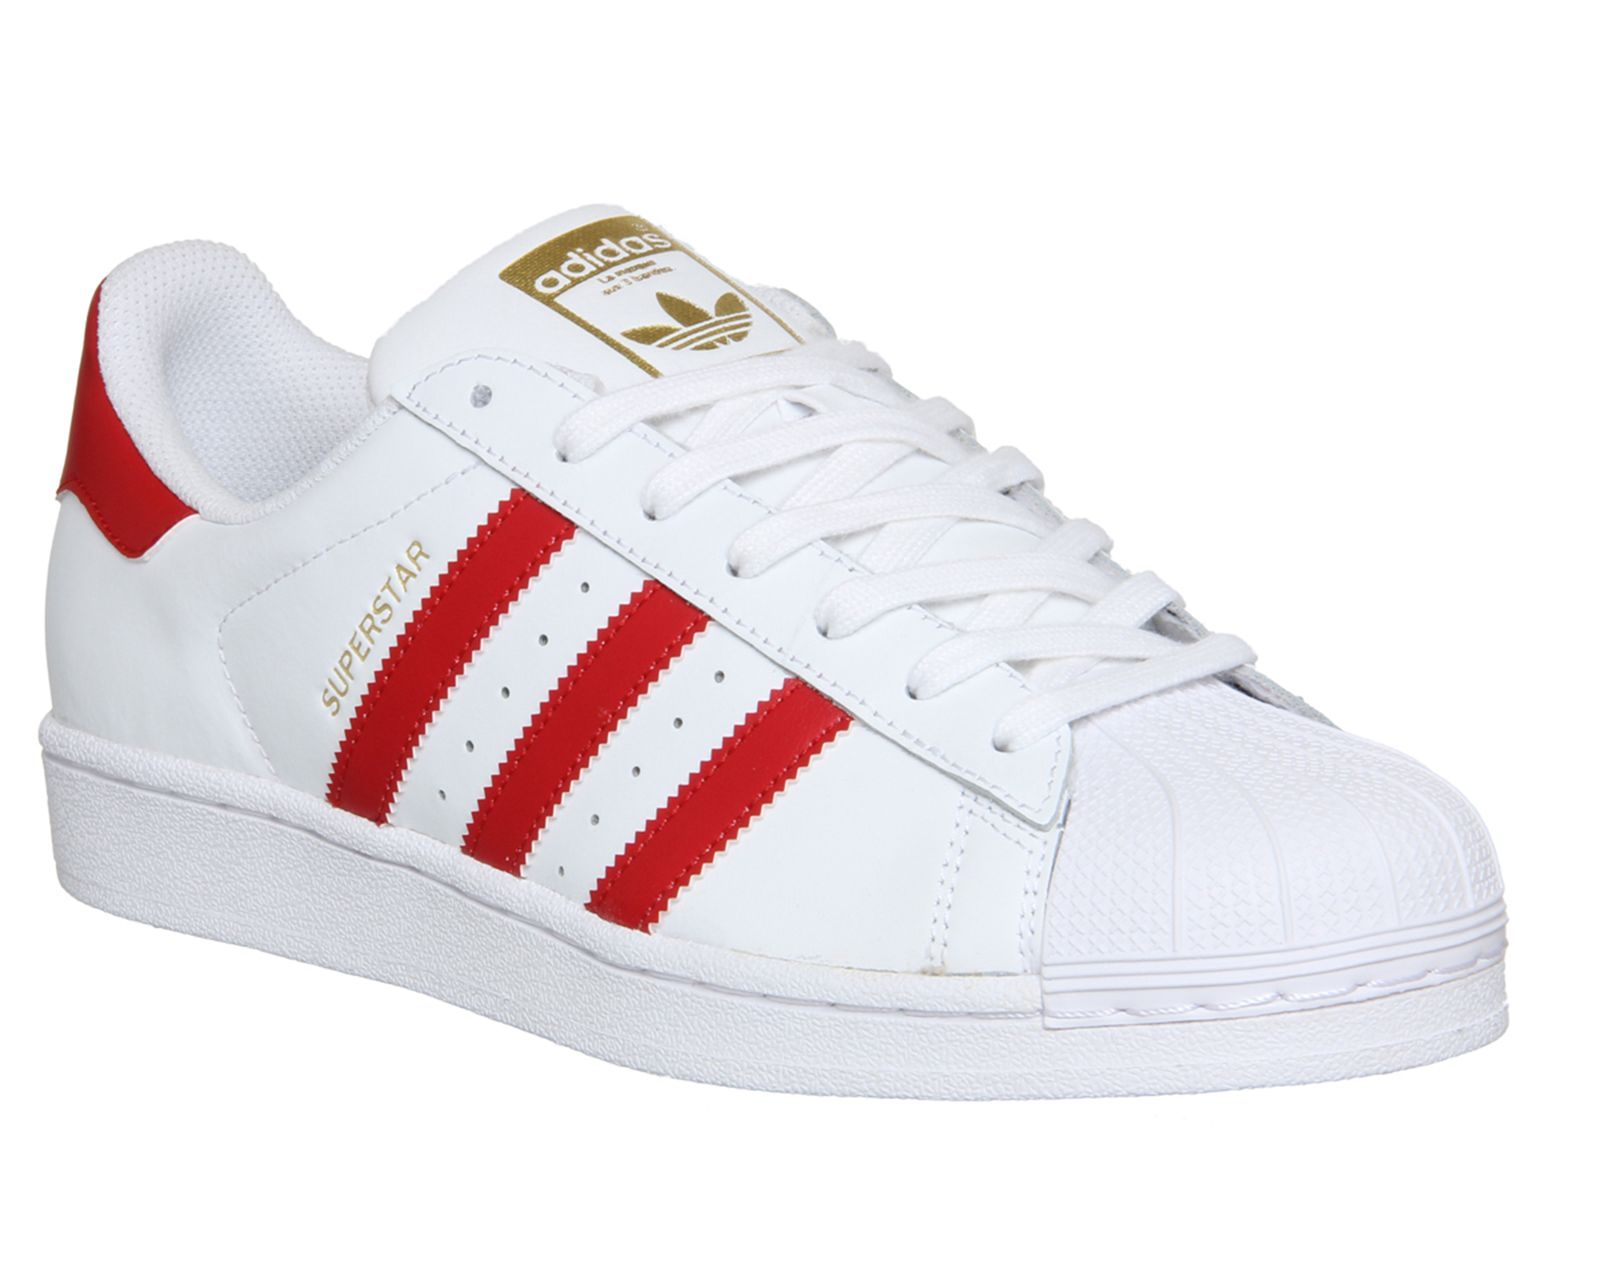 Adidas Sneakers Superstar 1 White Scarlet